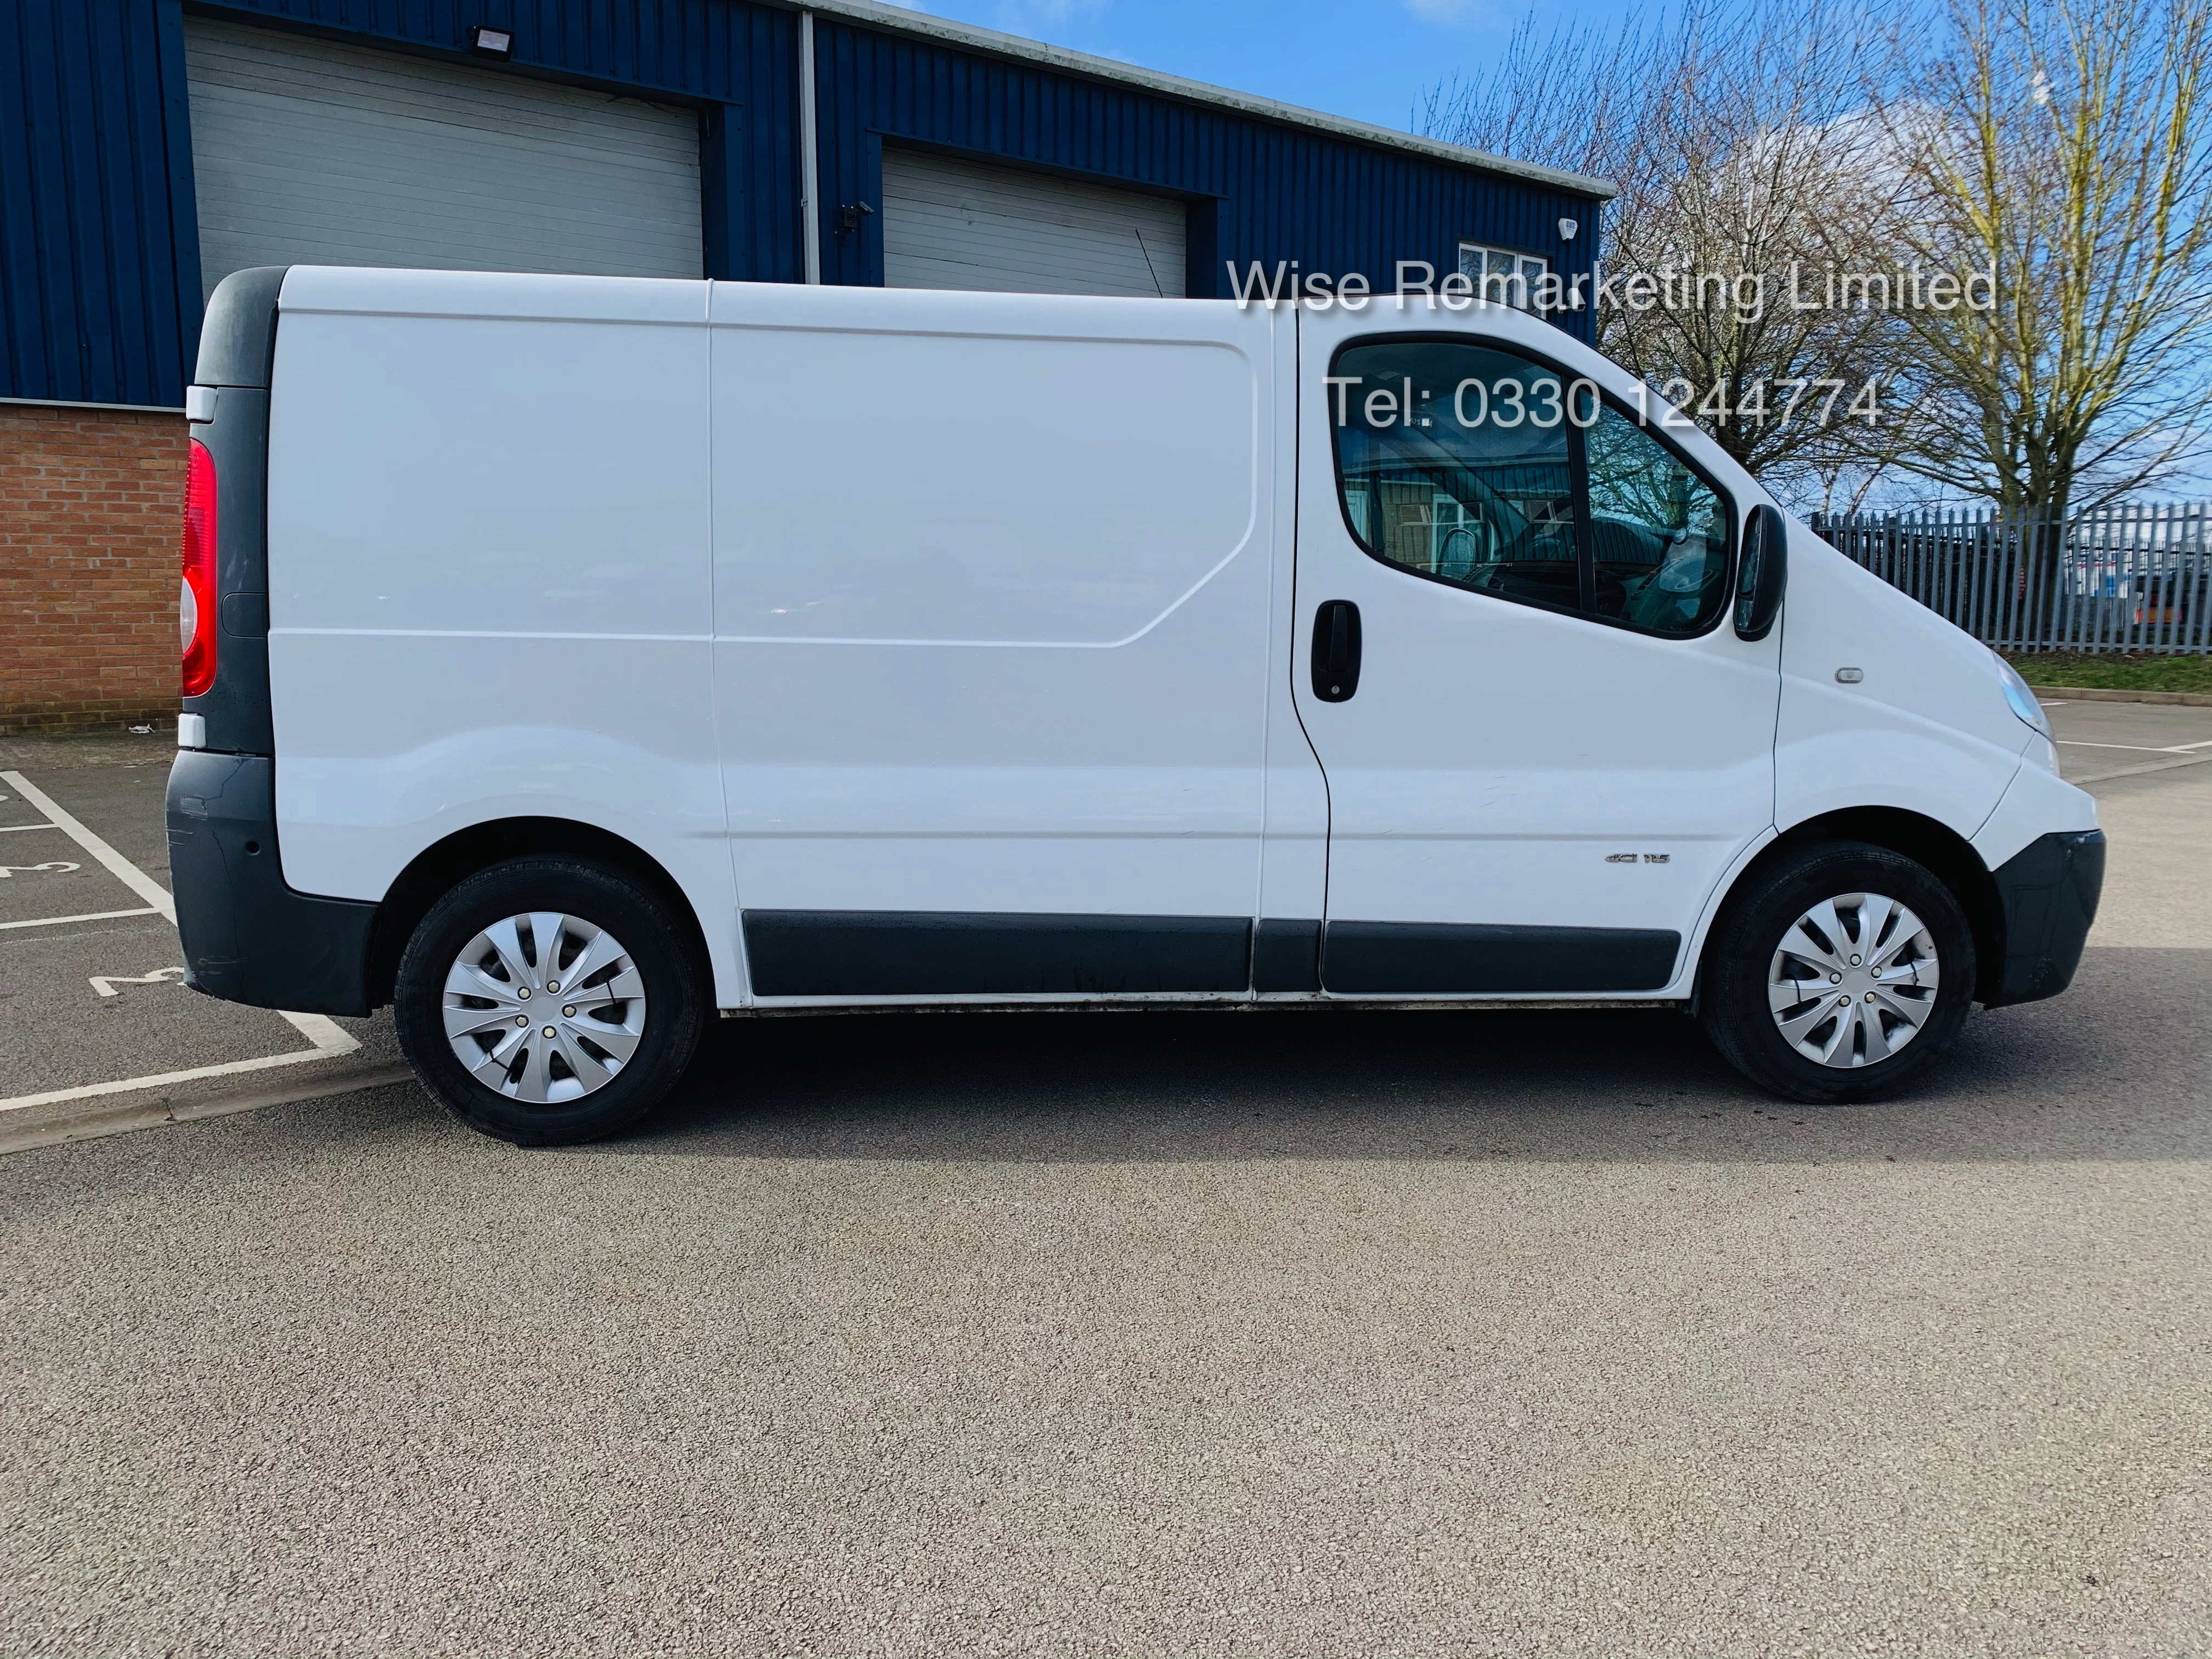 Renault Trafic 2.0 DCI (115 BHP) - 6 Speed - 2014 Reg - Ply Lined - - Image 8 of 21